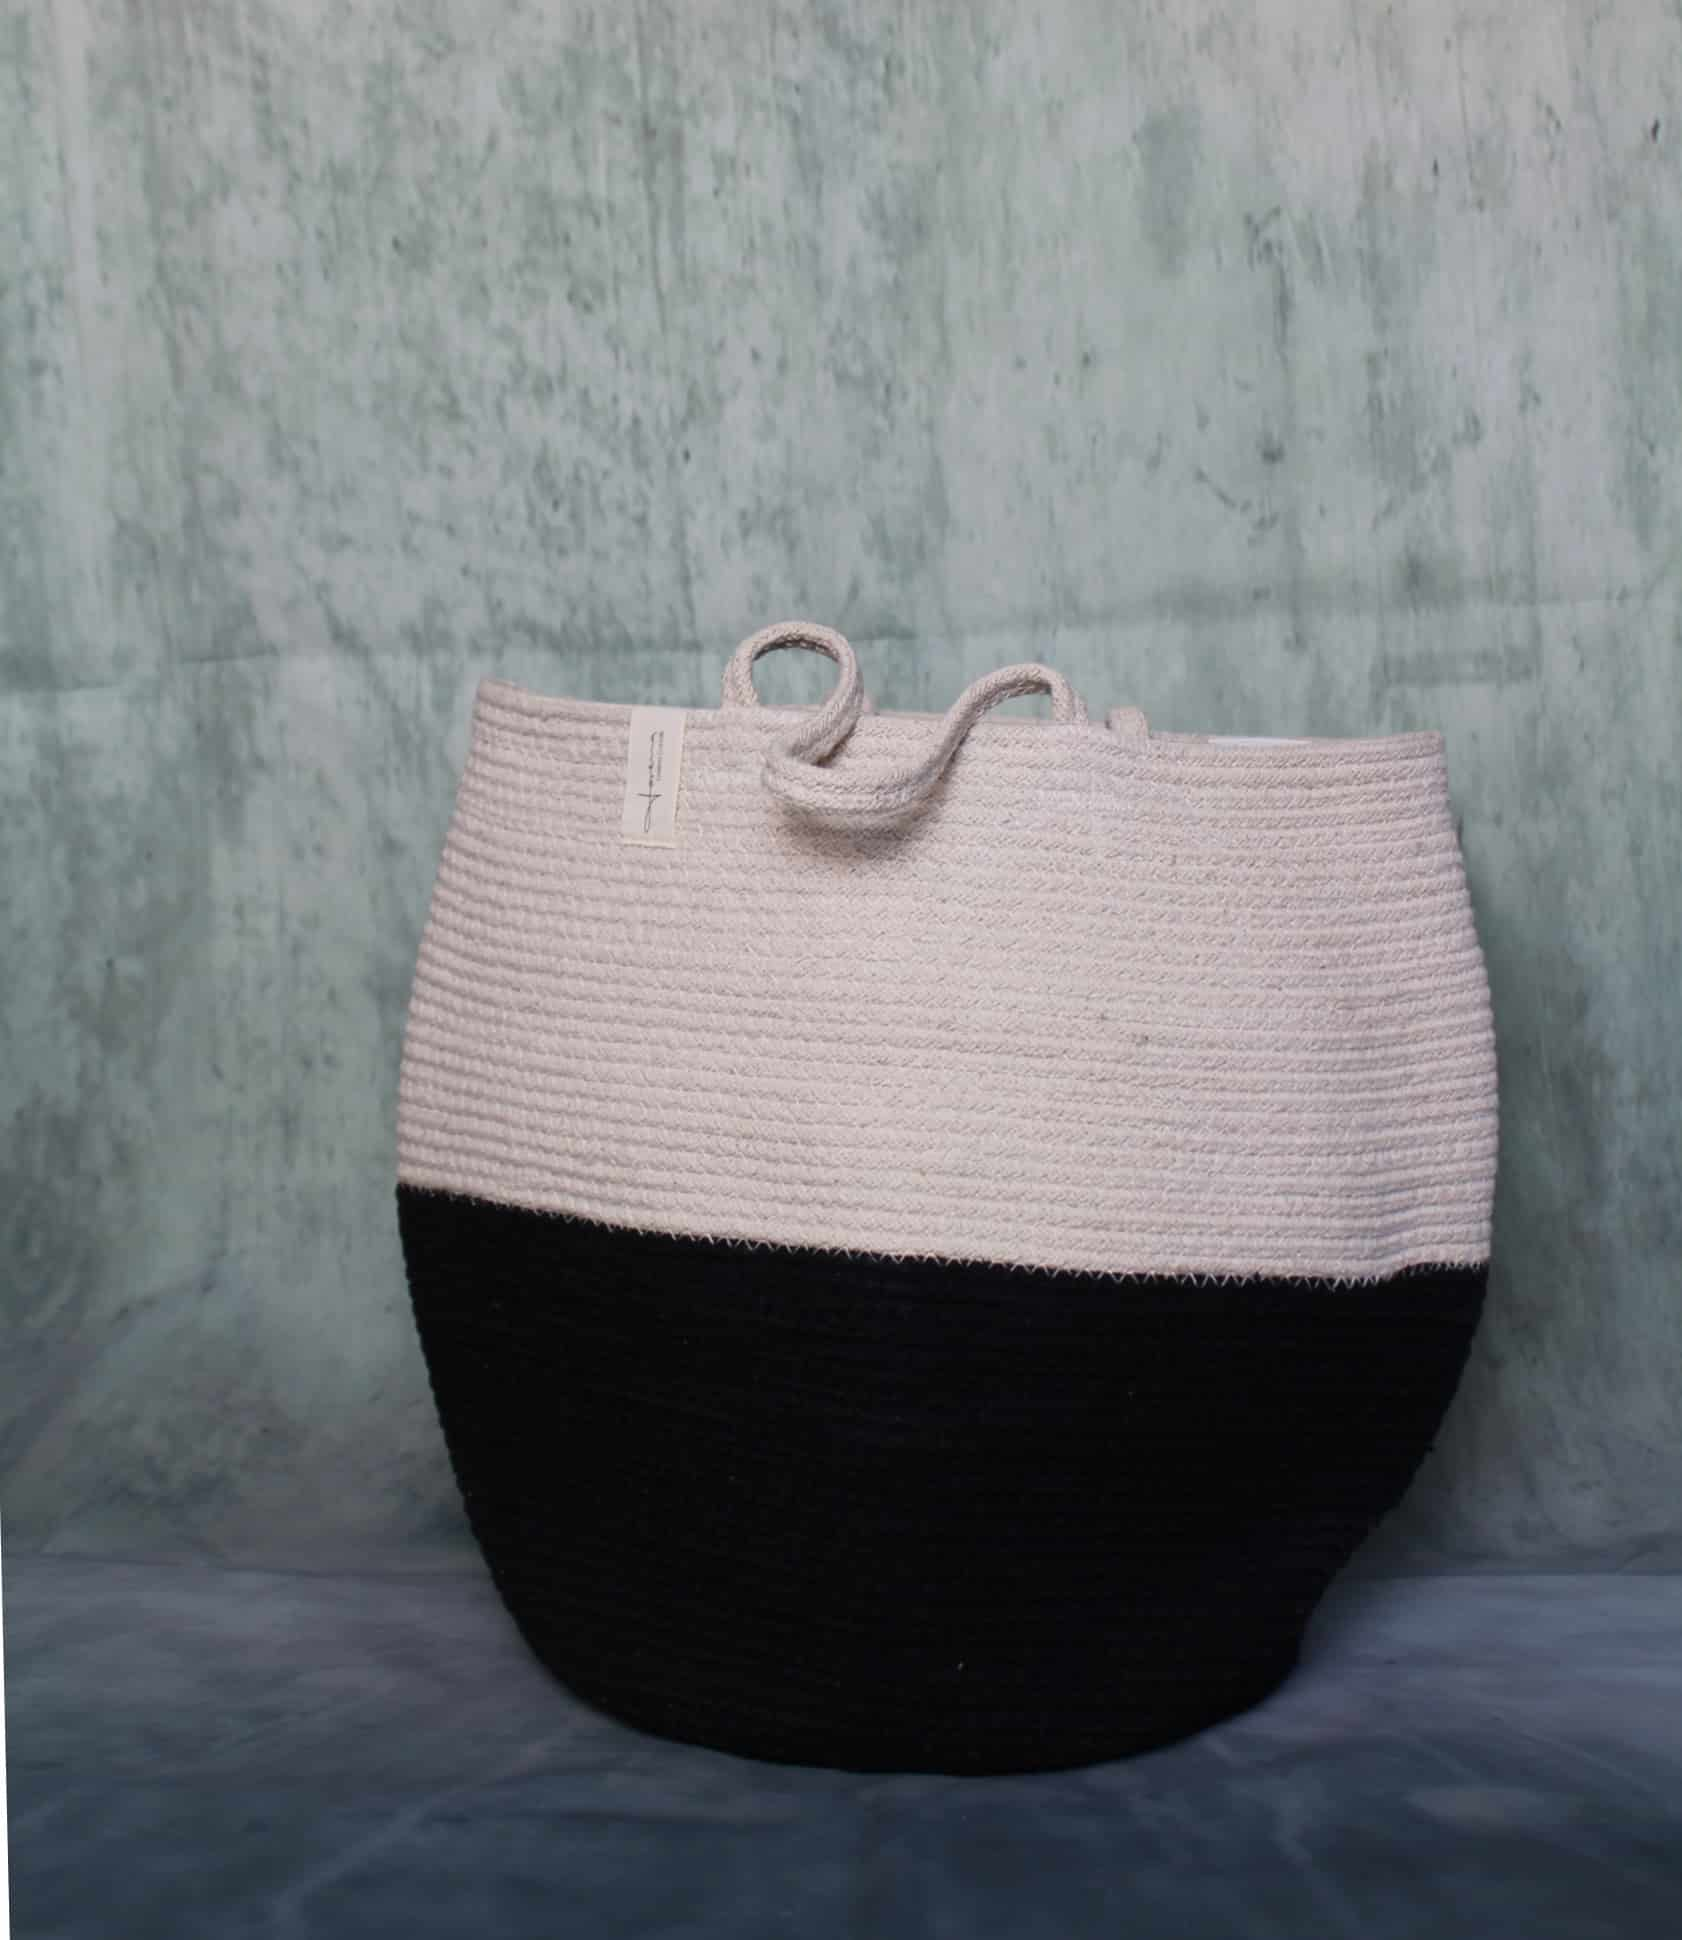 Baskets from Lorena Canals are the perfect gift